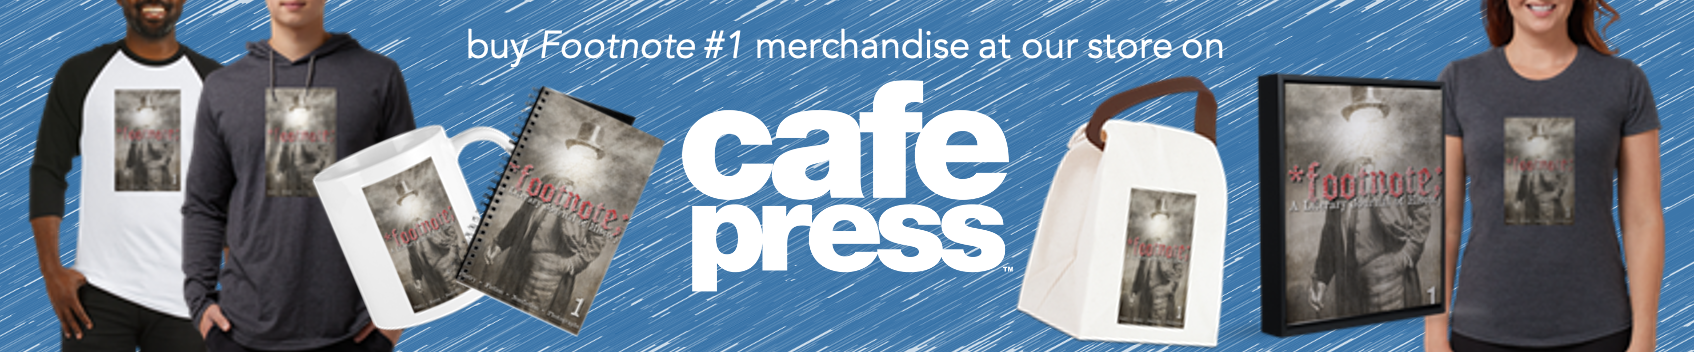 Buy Footnote 1 merchandise at Cafe Press